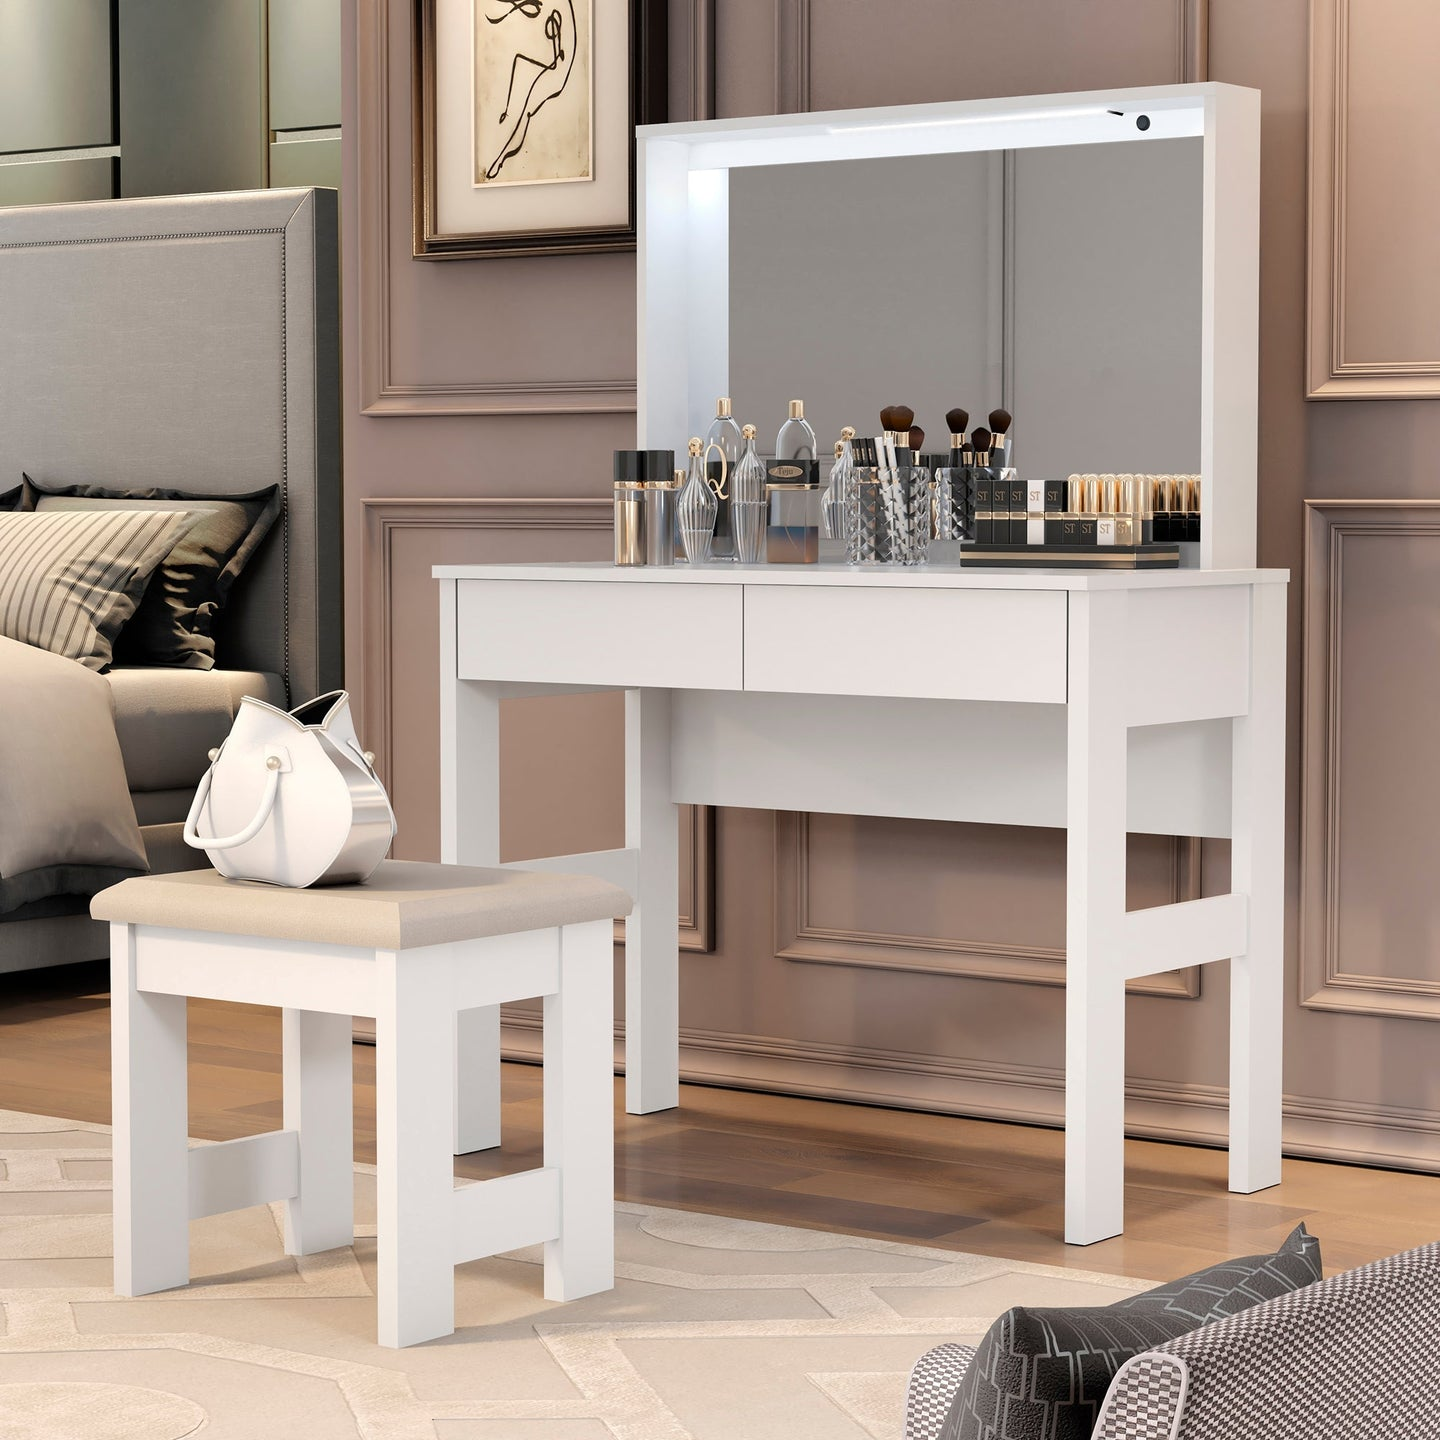 Boahaus Emma Vanity Set with LED lights